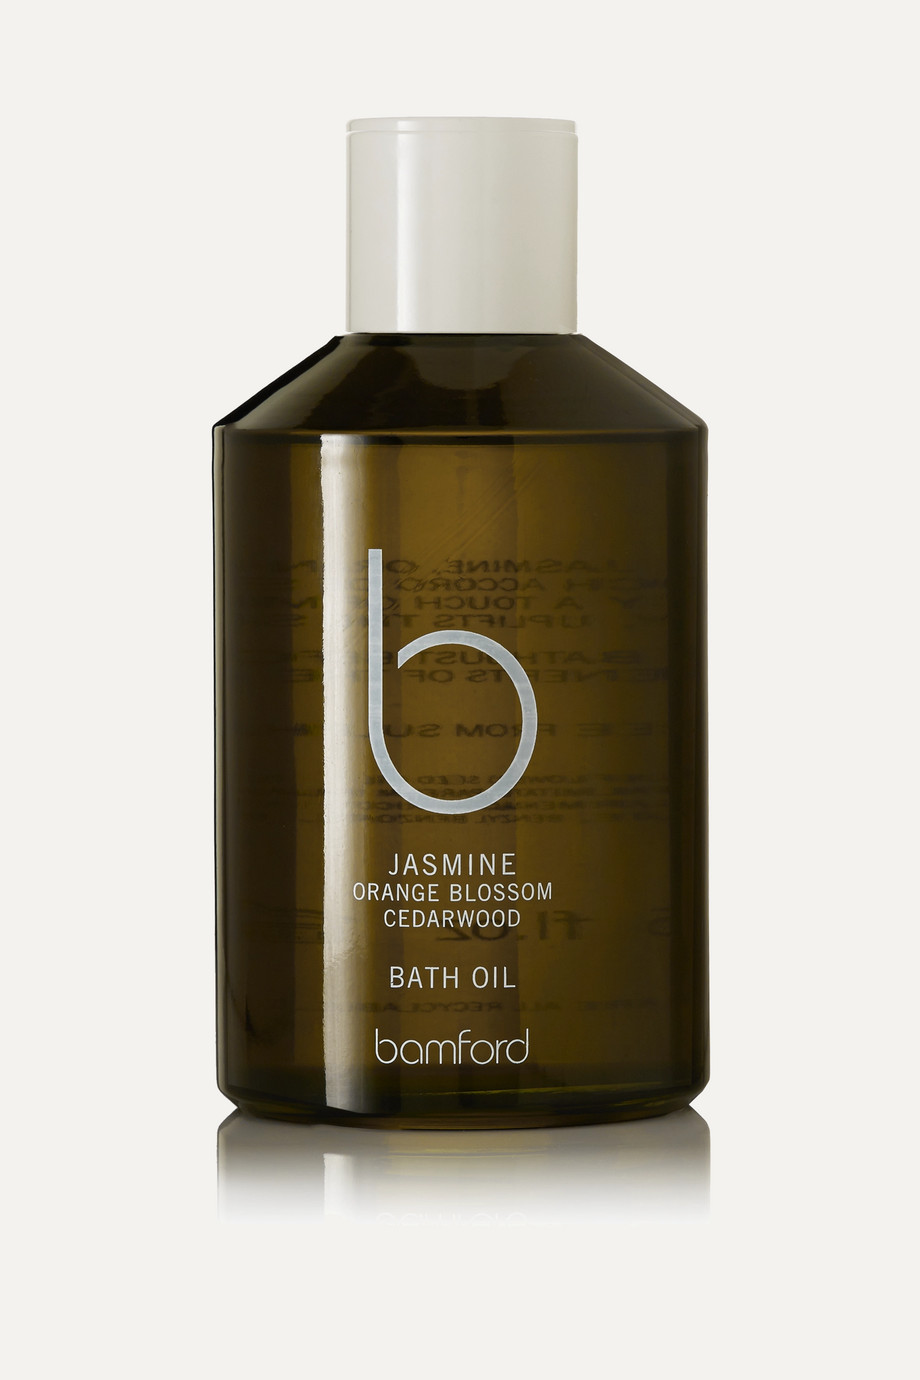 BAMFORD Jasmine Bath Oil, 250ml